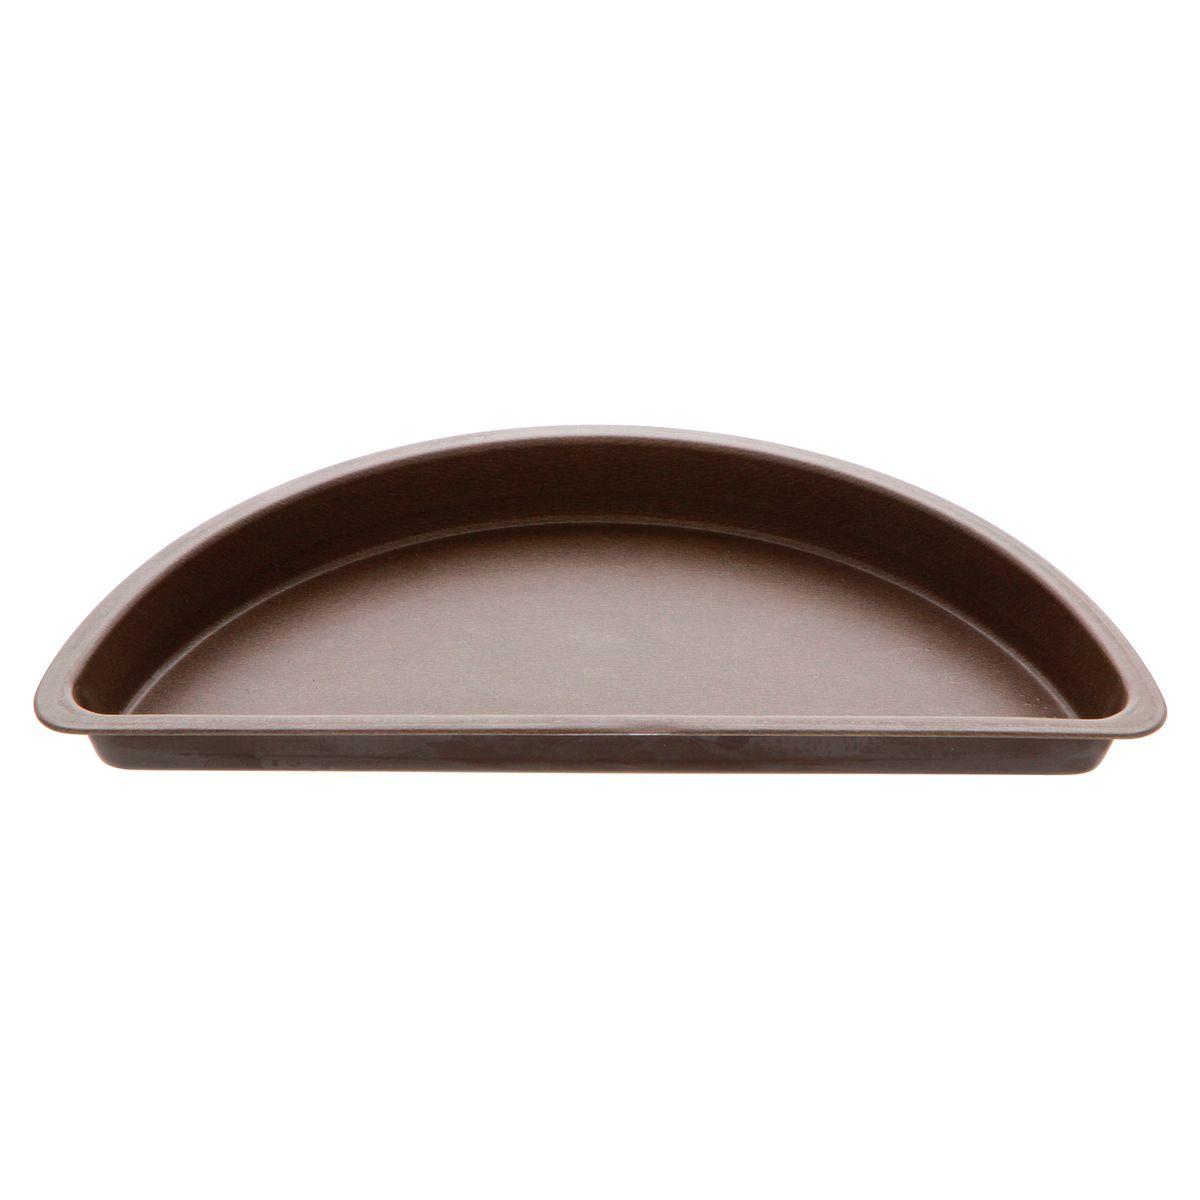 Moule demi tarte bords lisses marron anti adhérent 12 x 27.5 cm - Gobel